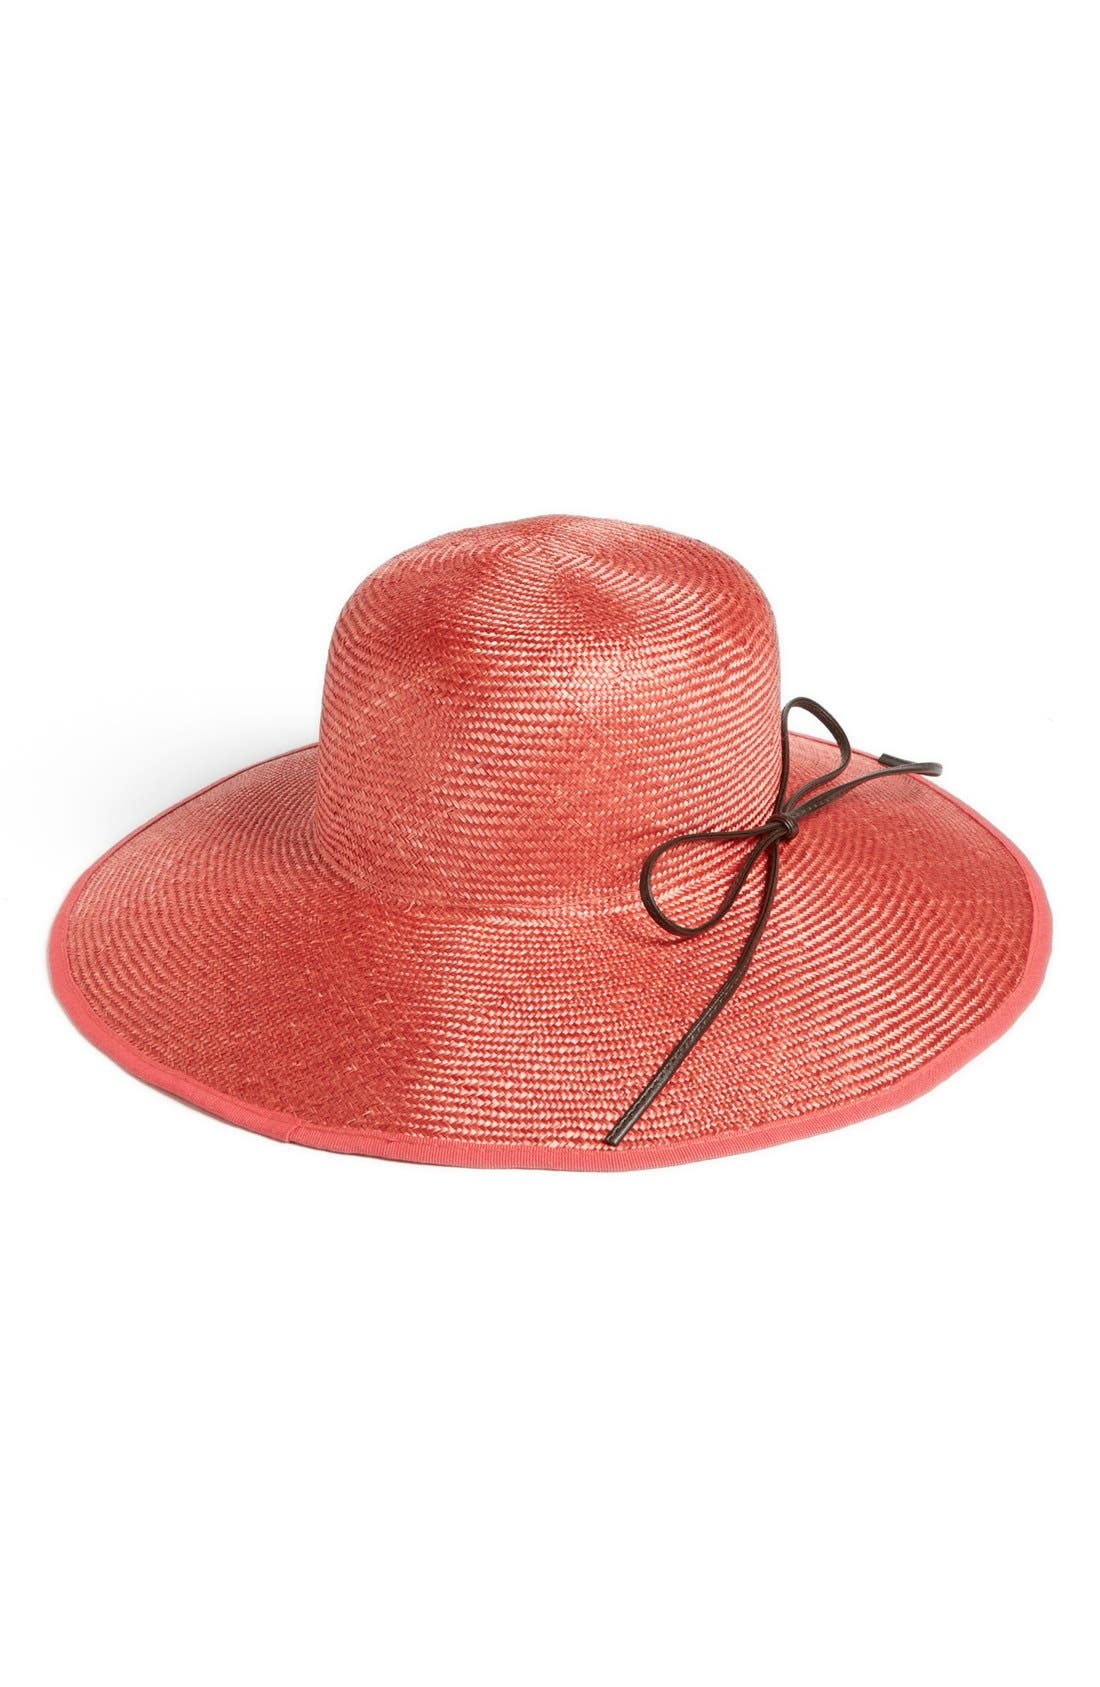 Main Image - Nordstrom Packable Straw Hat